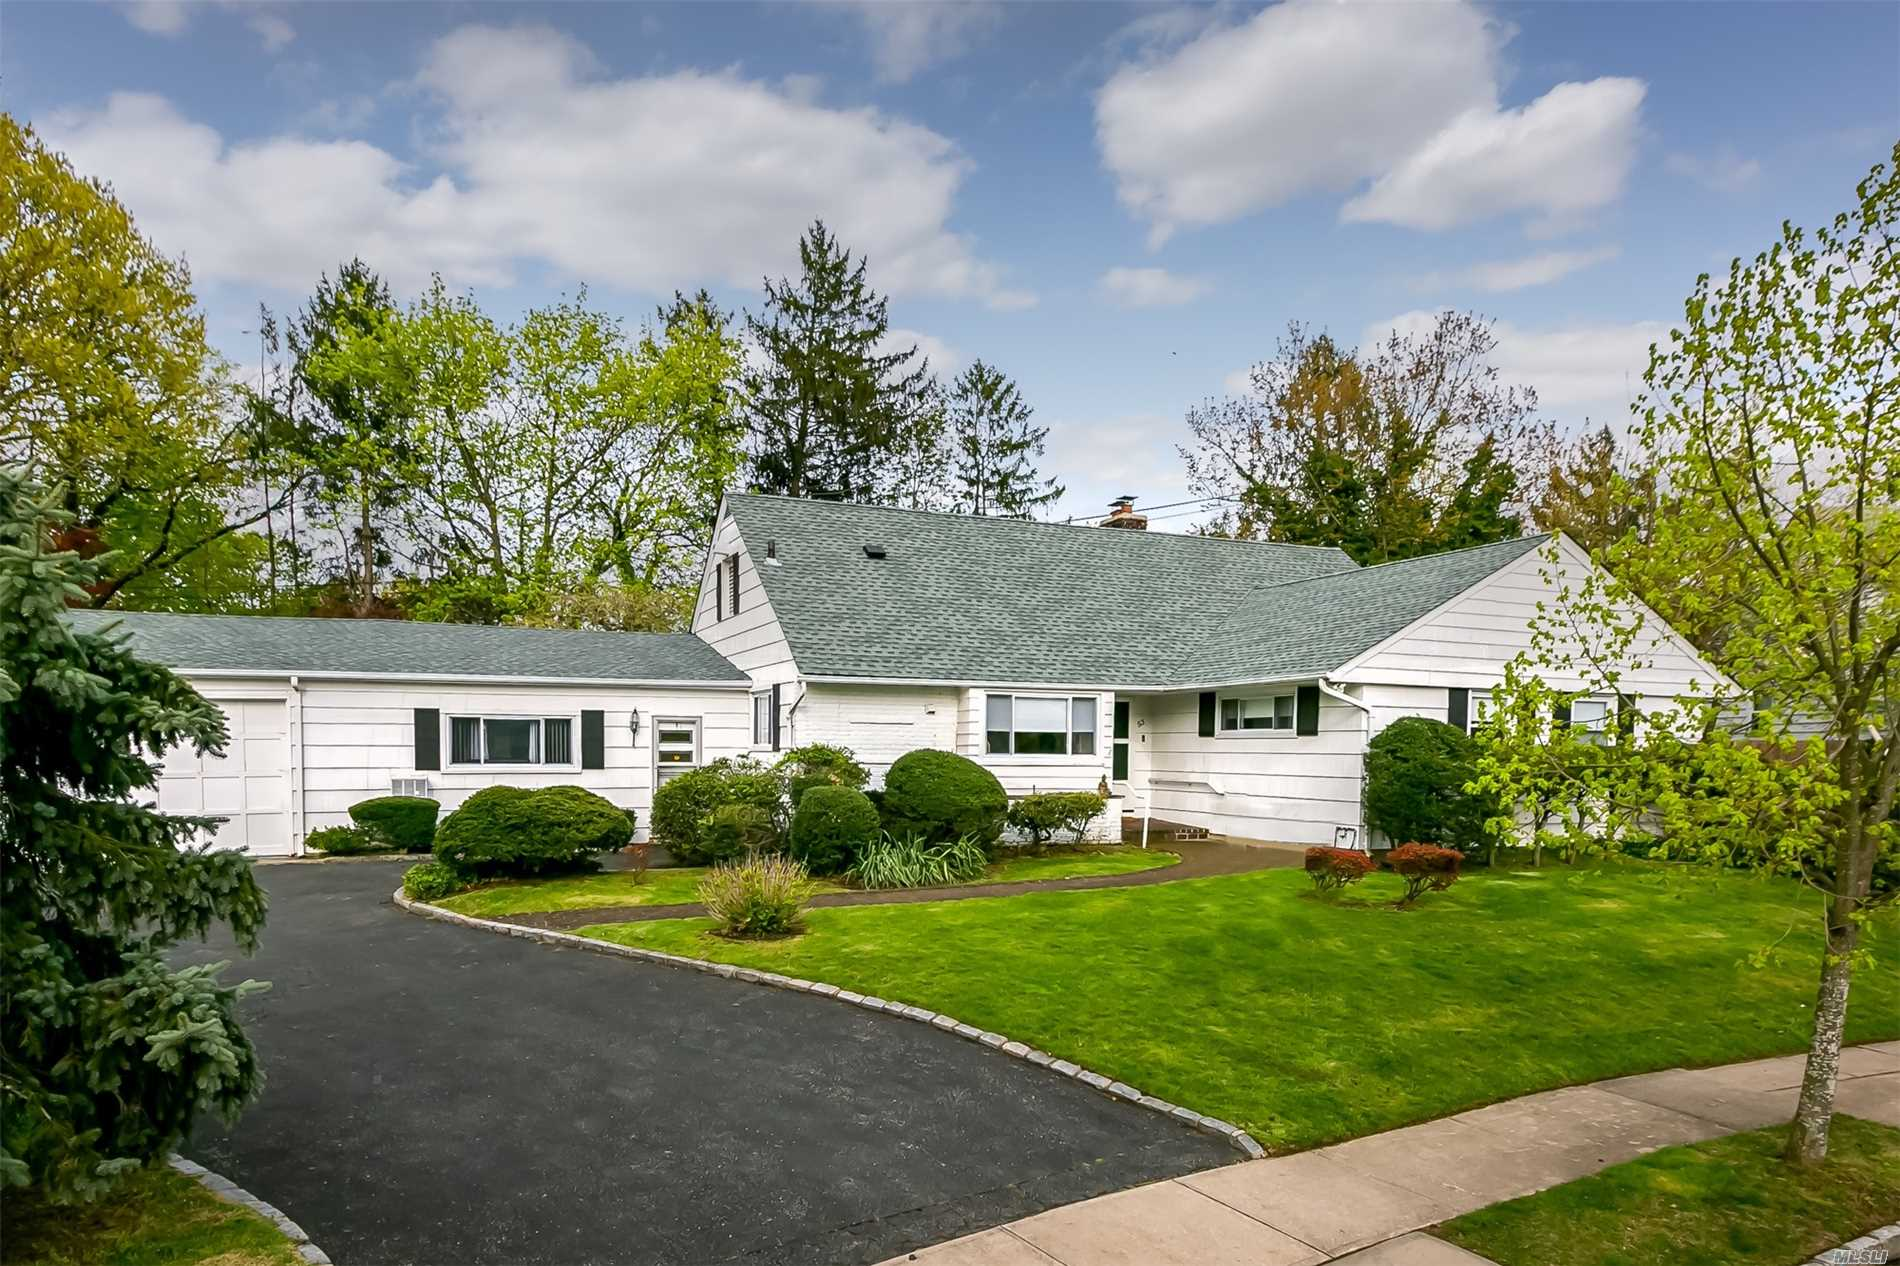 Beautifully Kept Expanded Cape W/ Over 2600 Sq Ft Of Sprawling Living Space Not Including The Bonus Unfinished Walkup Attic. Located In The Todd Estates Of The Award Winning North Shore School District On A Over Sized Private Park Like Yard Perfect For Entertaining. Three Large Bedrooms Including A MBR En-Suite, Formal Dining Room, Office, And An Expansive Den Ideal For Entertaining. Low Taxes, Two Car Garage Close To LIRR, Shopping, Restaurants And Much More.